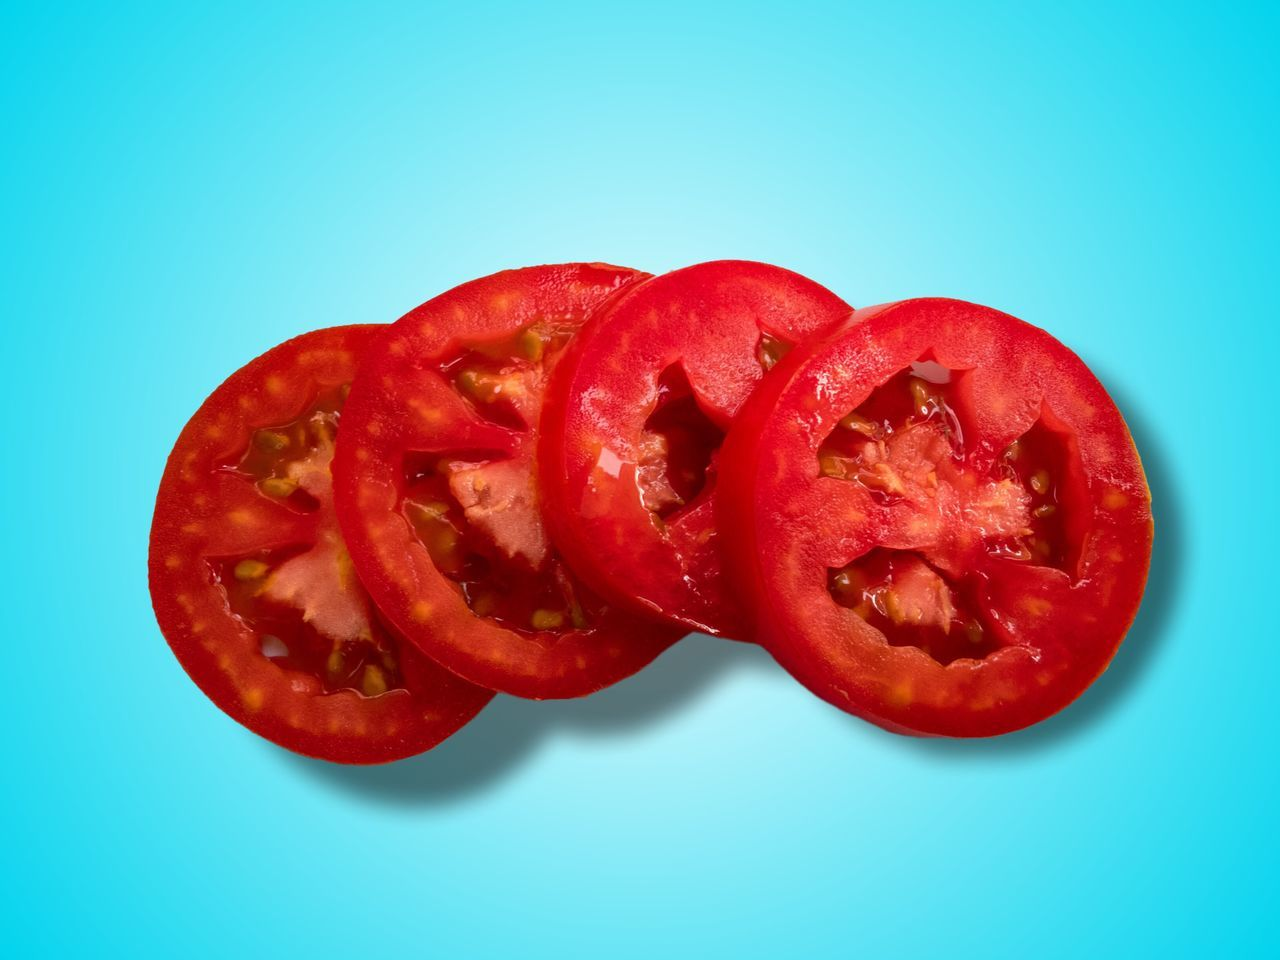 Red Studio Shot Vegetable Healthy Eating Freshness Close-up Food Food And Drink Red Bell Pepper No People Day Tomato